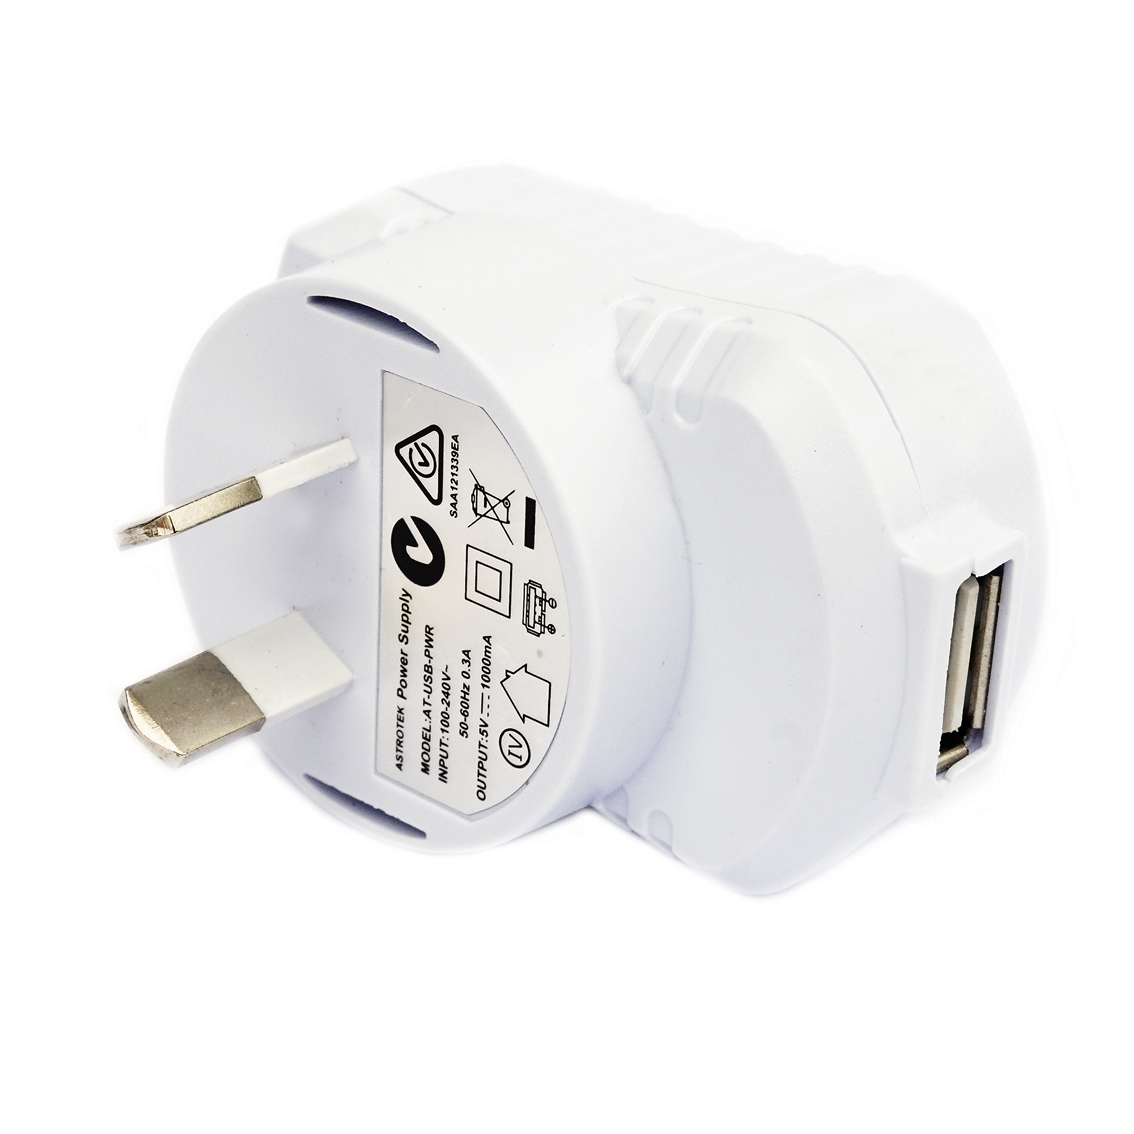 Astrotek USB Wall Power Charger Output: 5V 1A, Input: 110-240V AU Plug for Smartphones, Tablets White